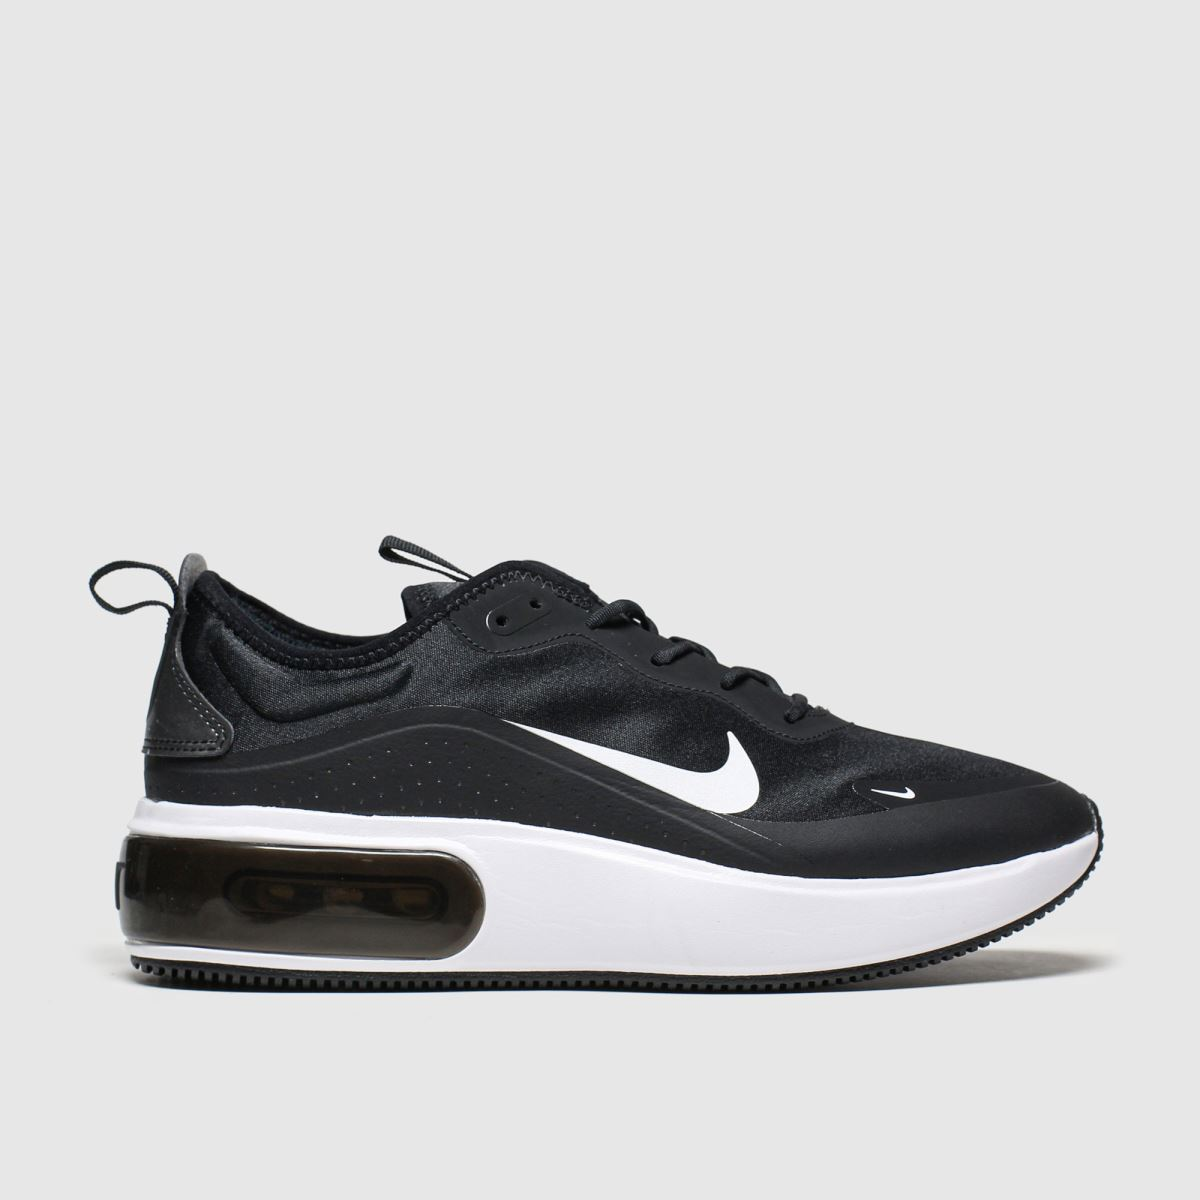 Nike Nike Black & White Air Max Dia Trainers